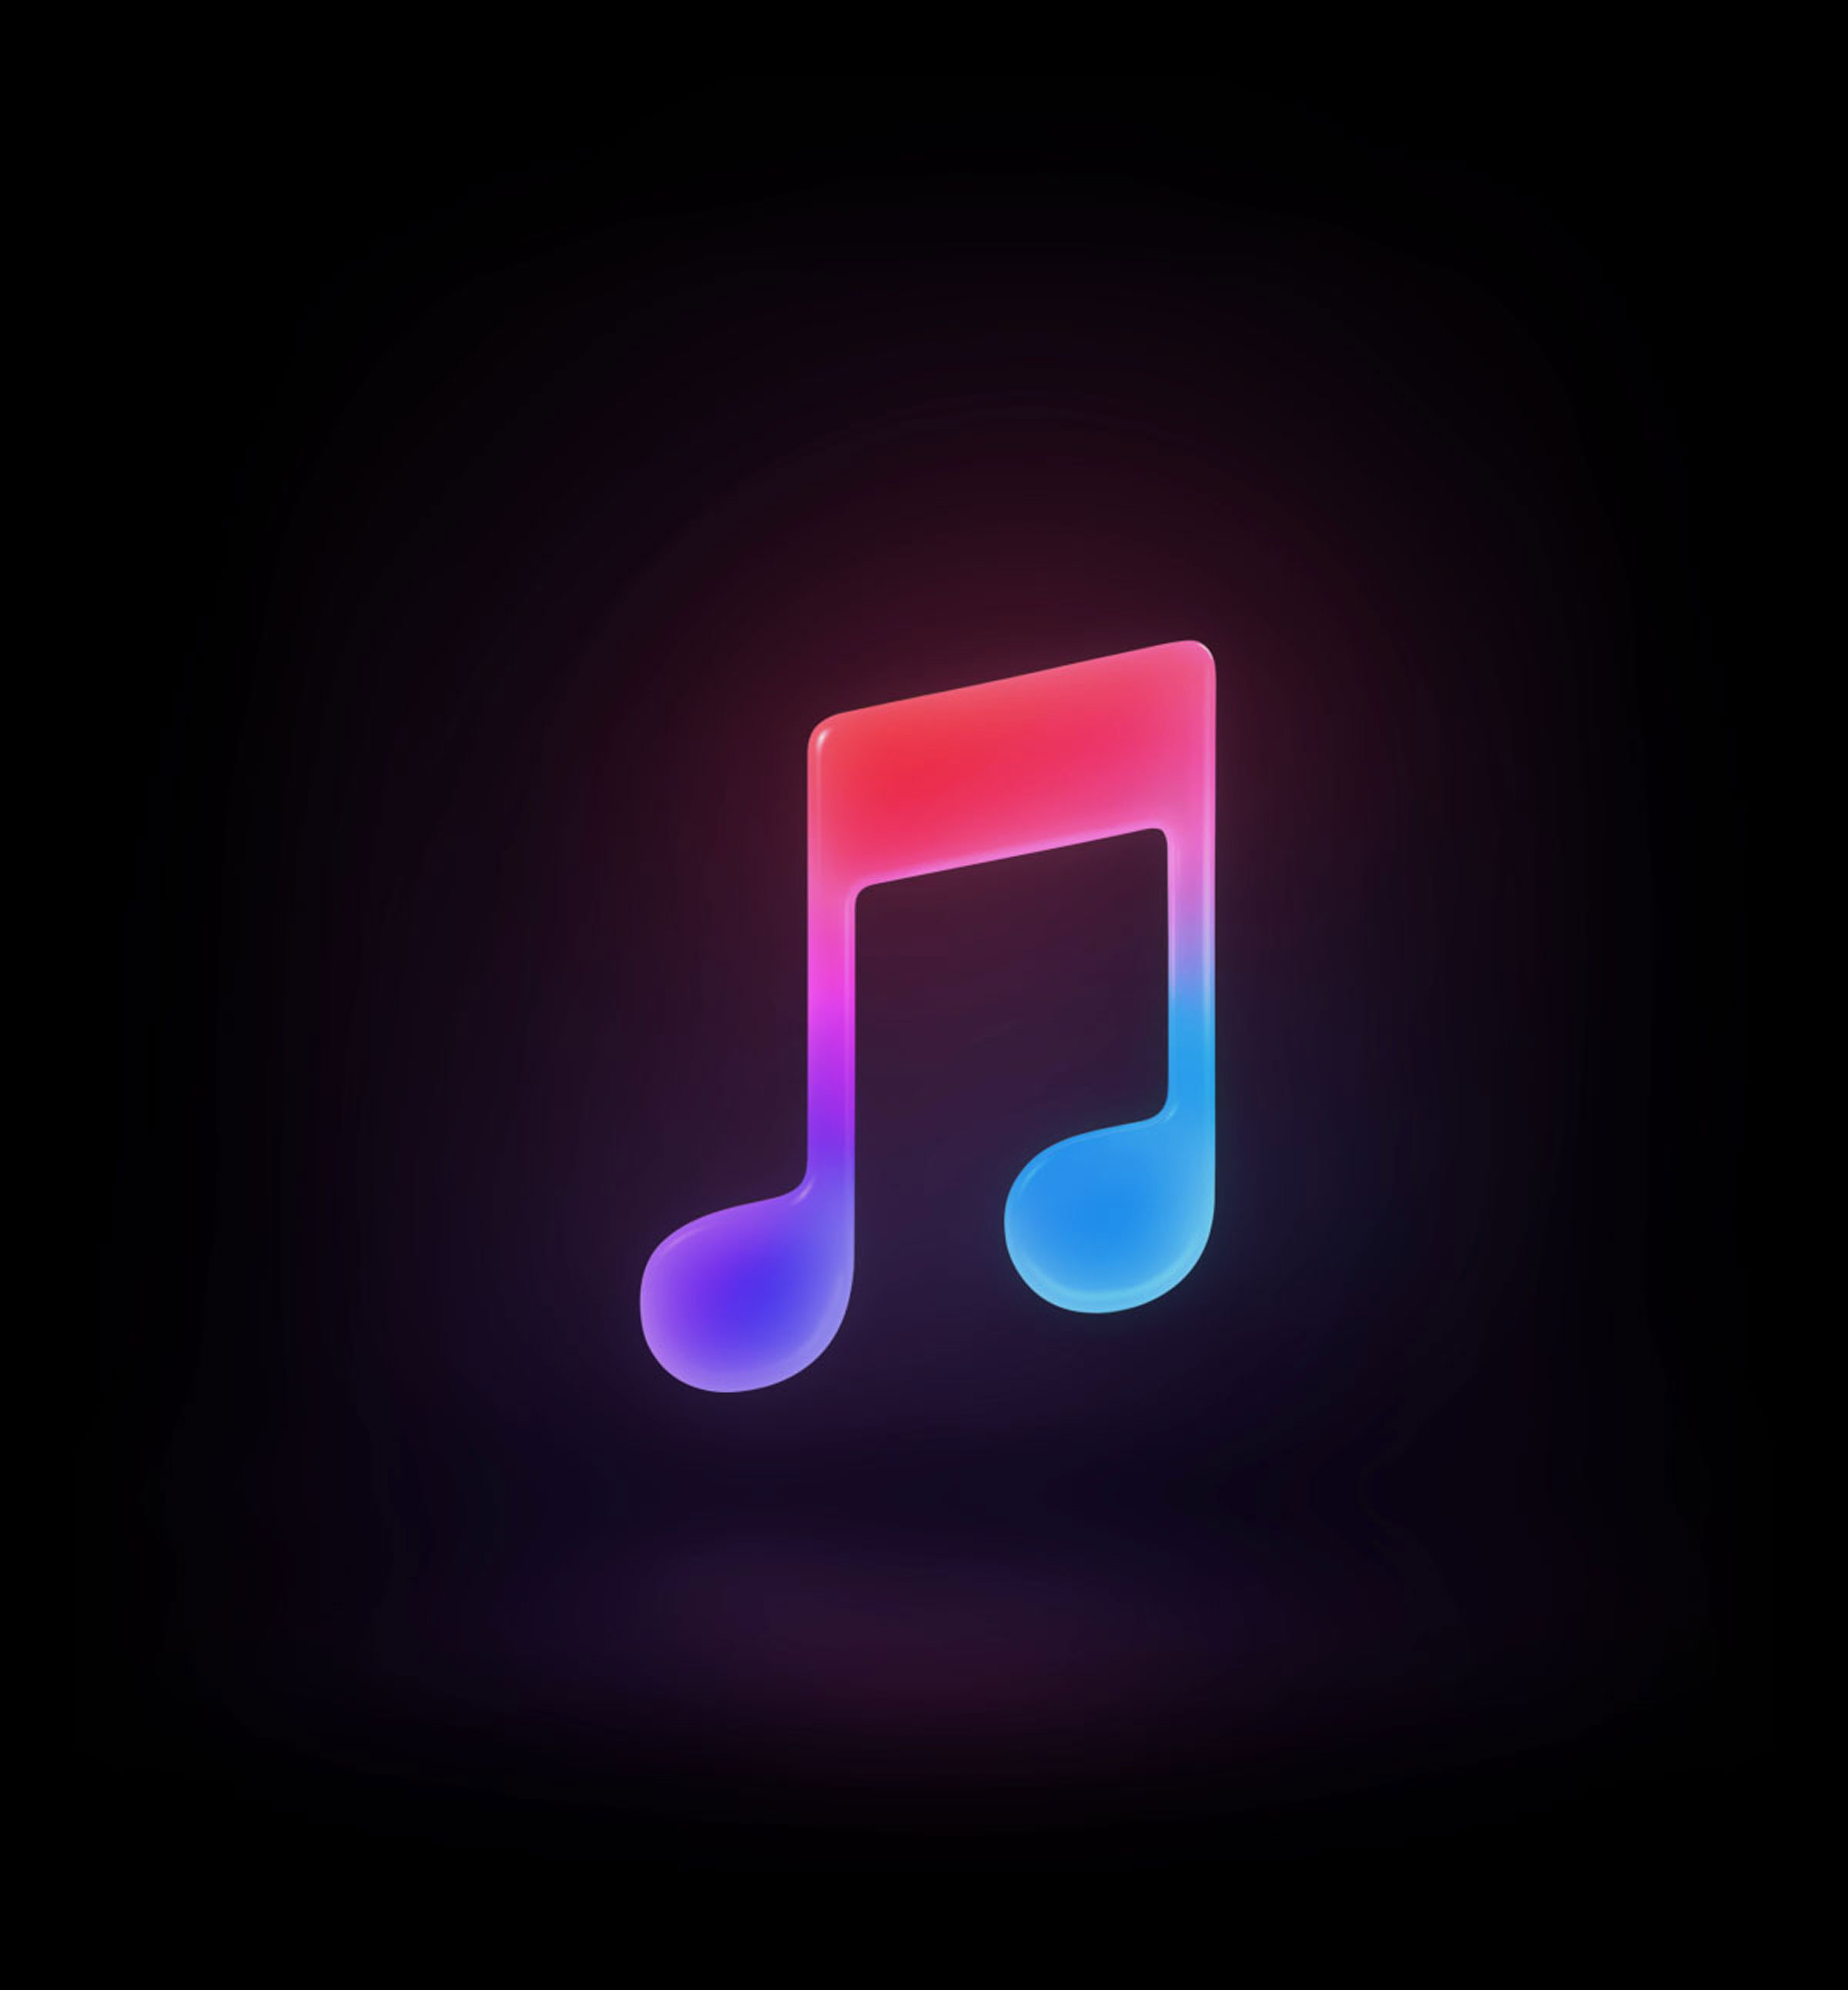 The Apple Music logo.